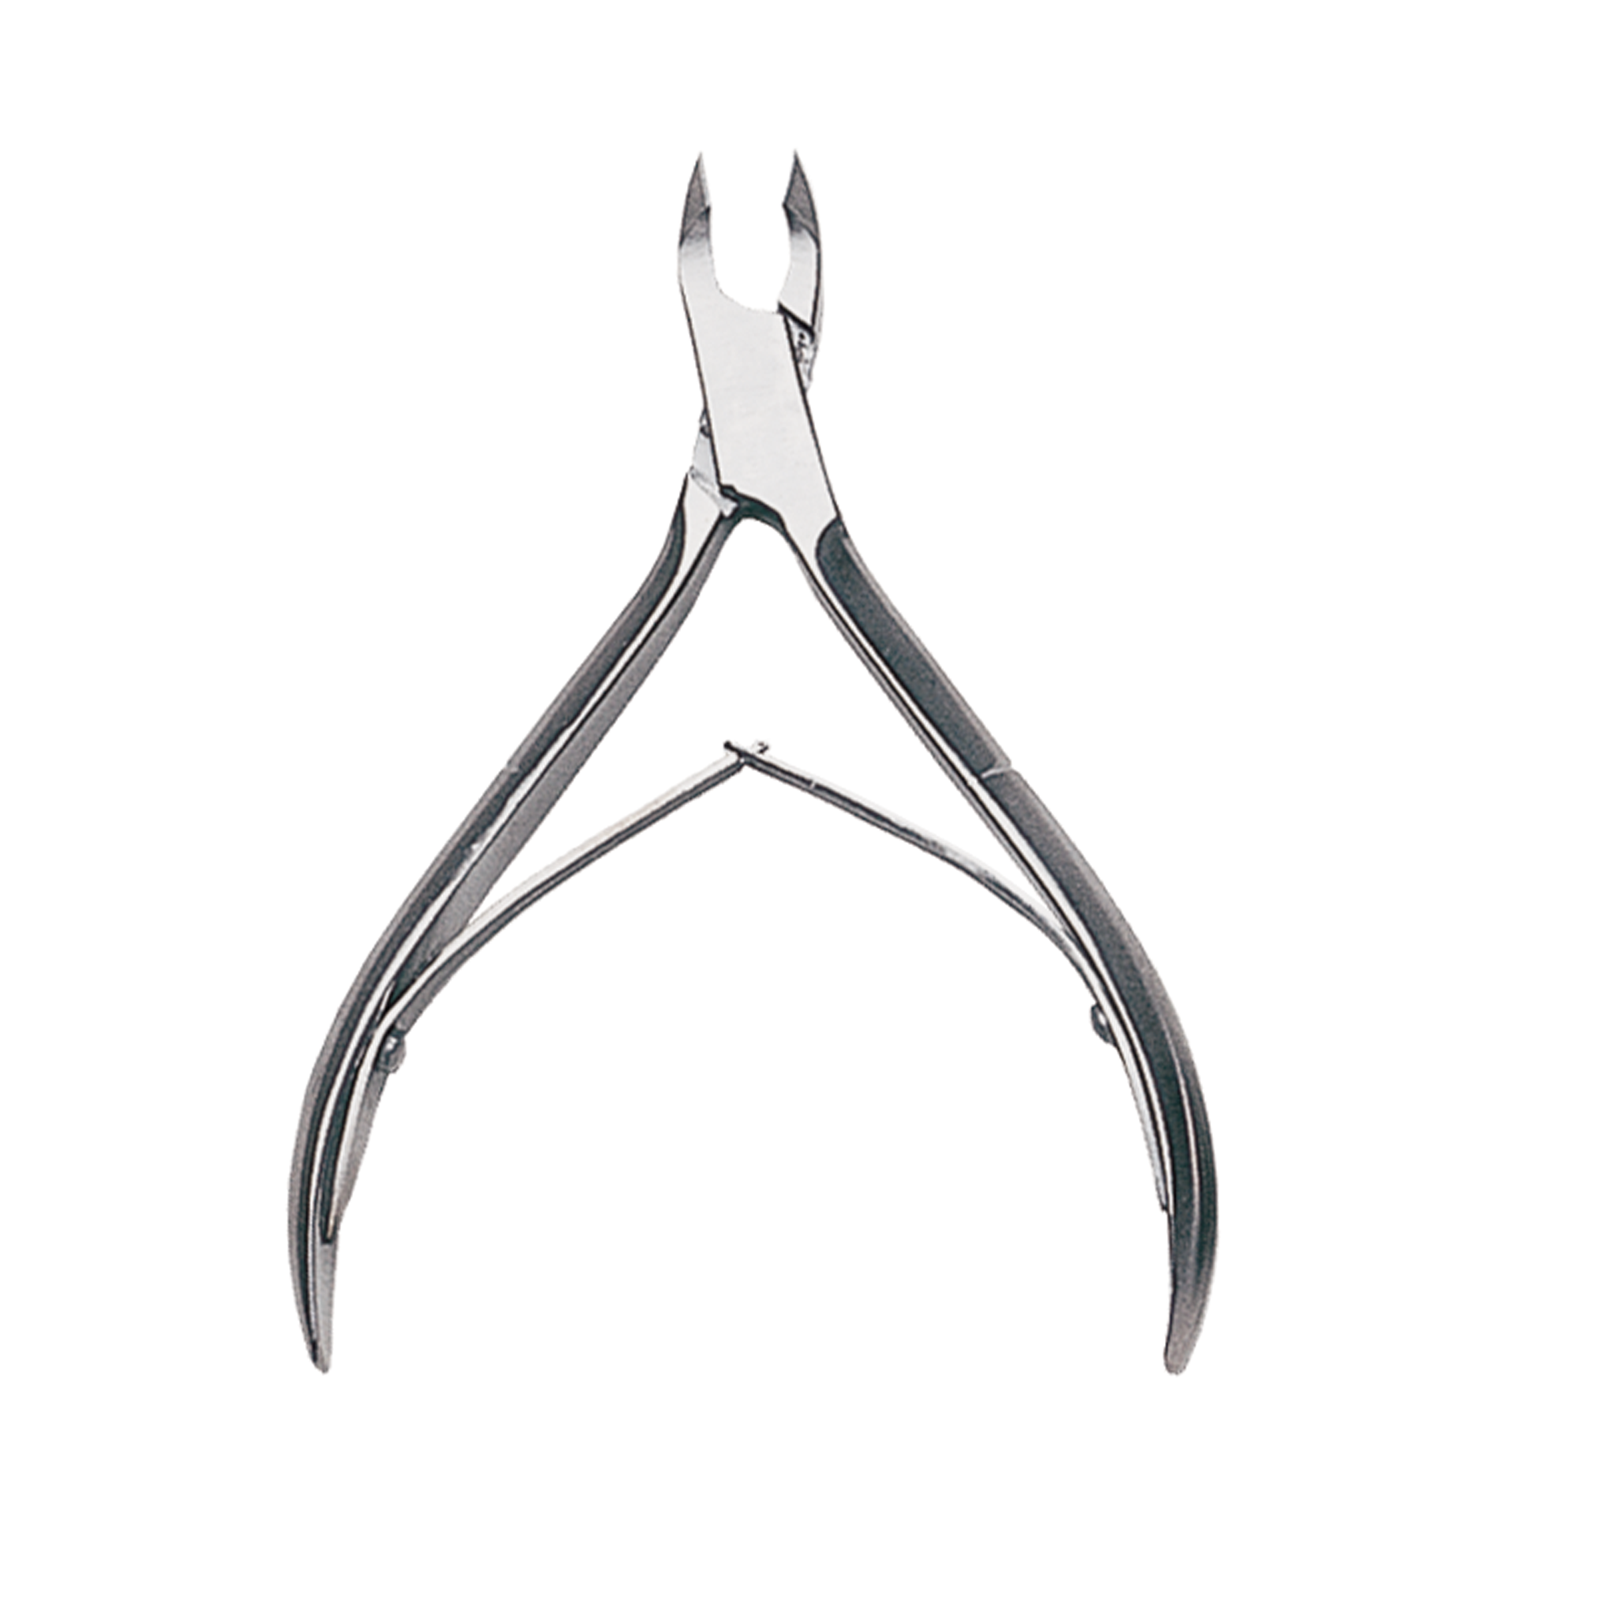 Star Nail Steel 1/2 Jaw Cuticle Nipper - Cuccio Cina Pro Star Pro ...